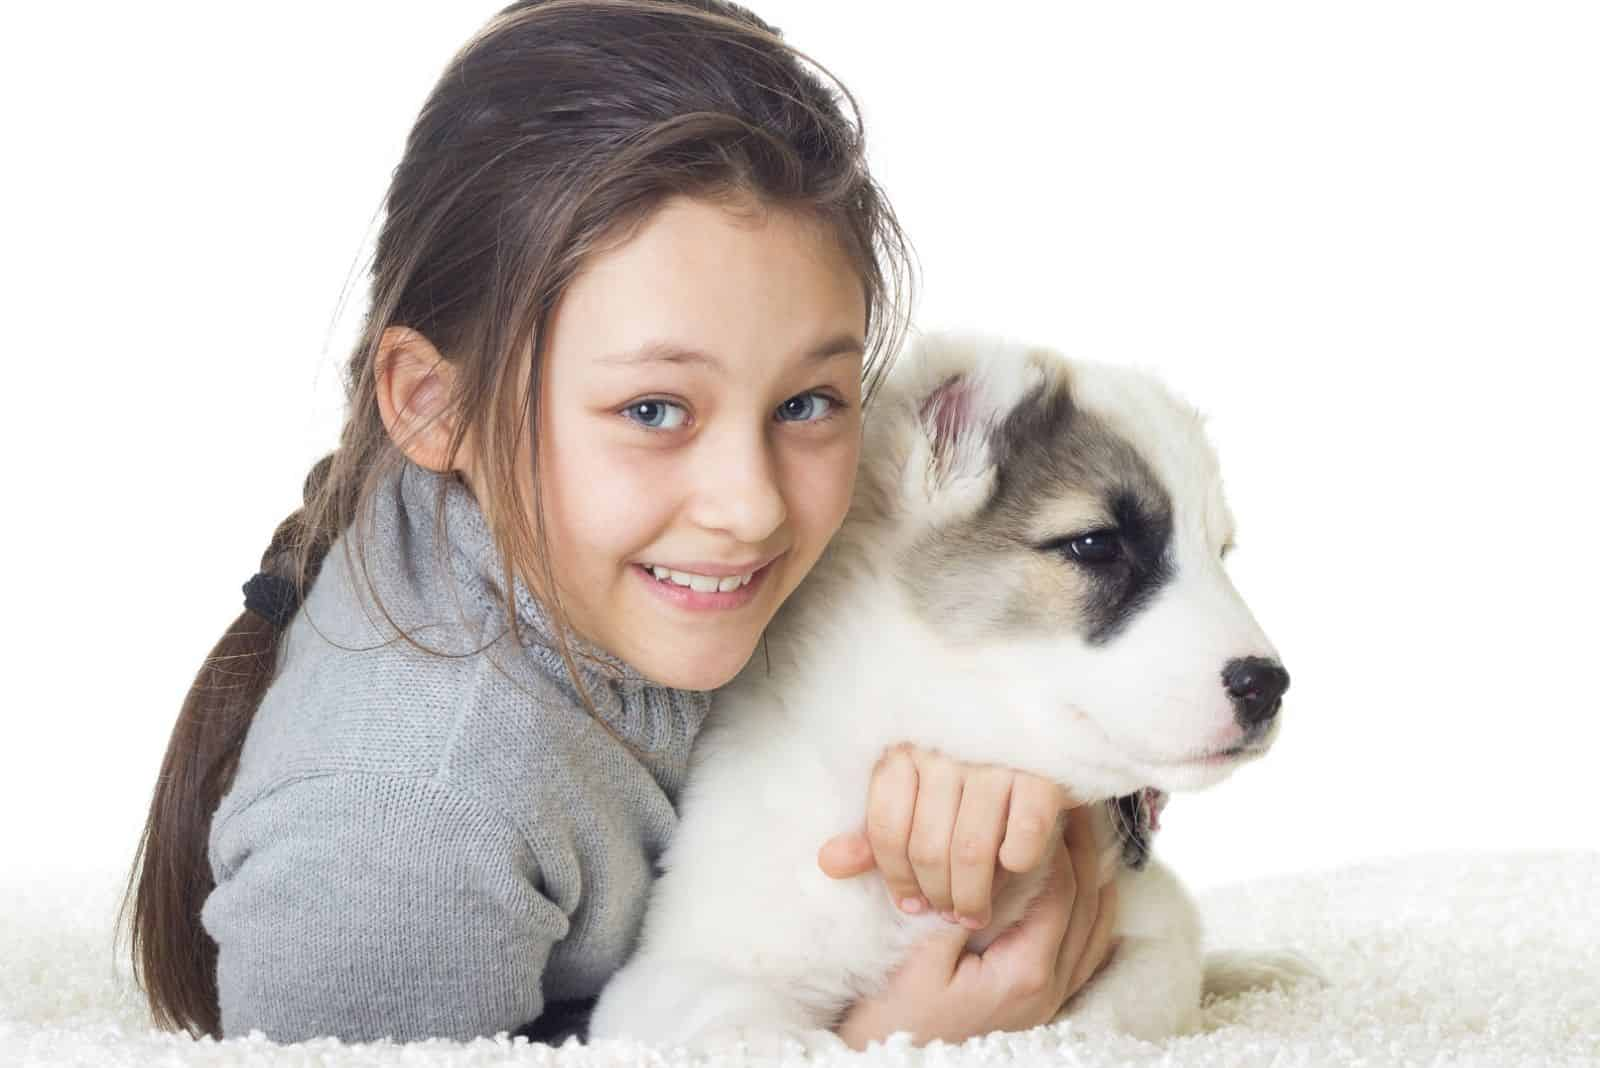 girl embracing a puppy a white german shephed with black markings